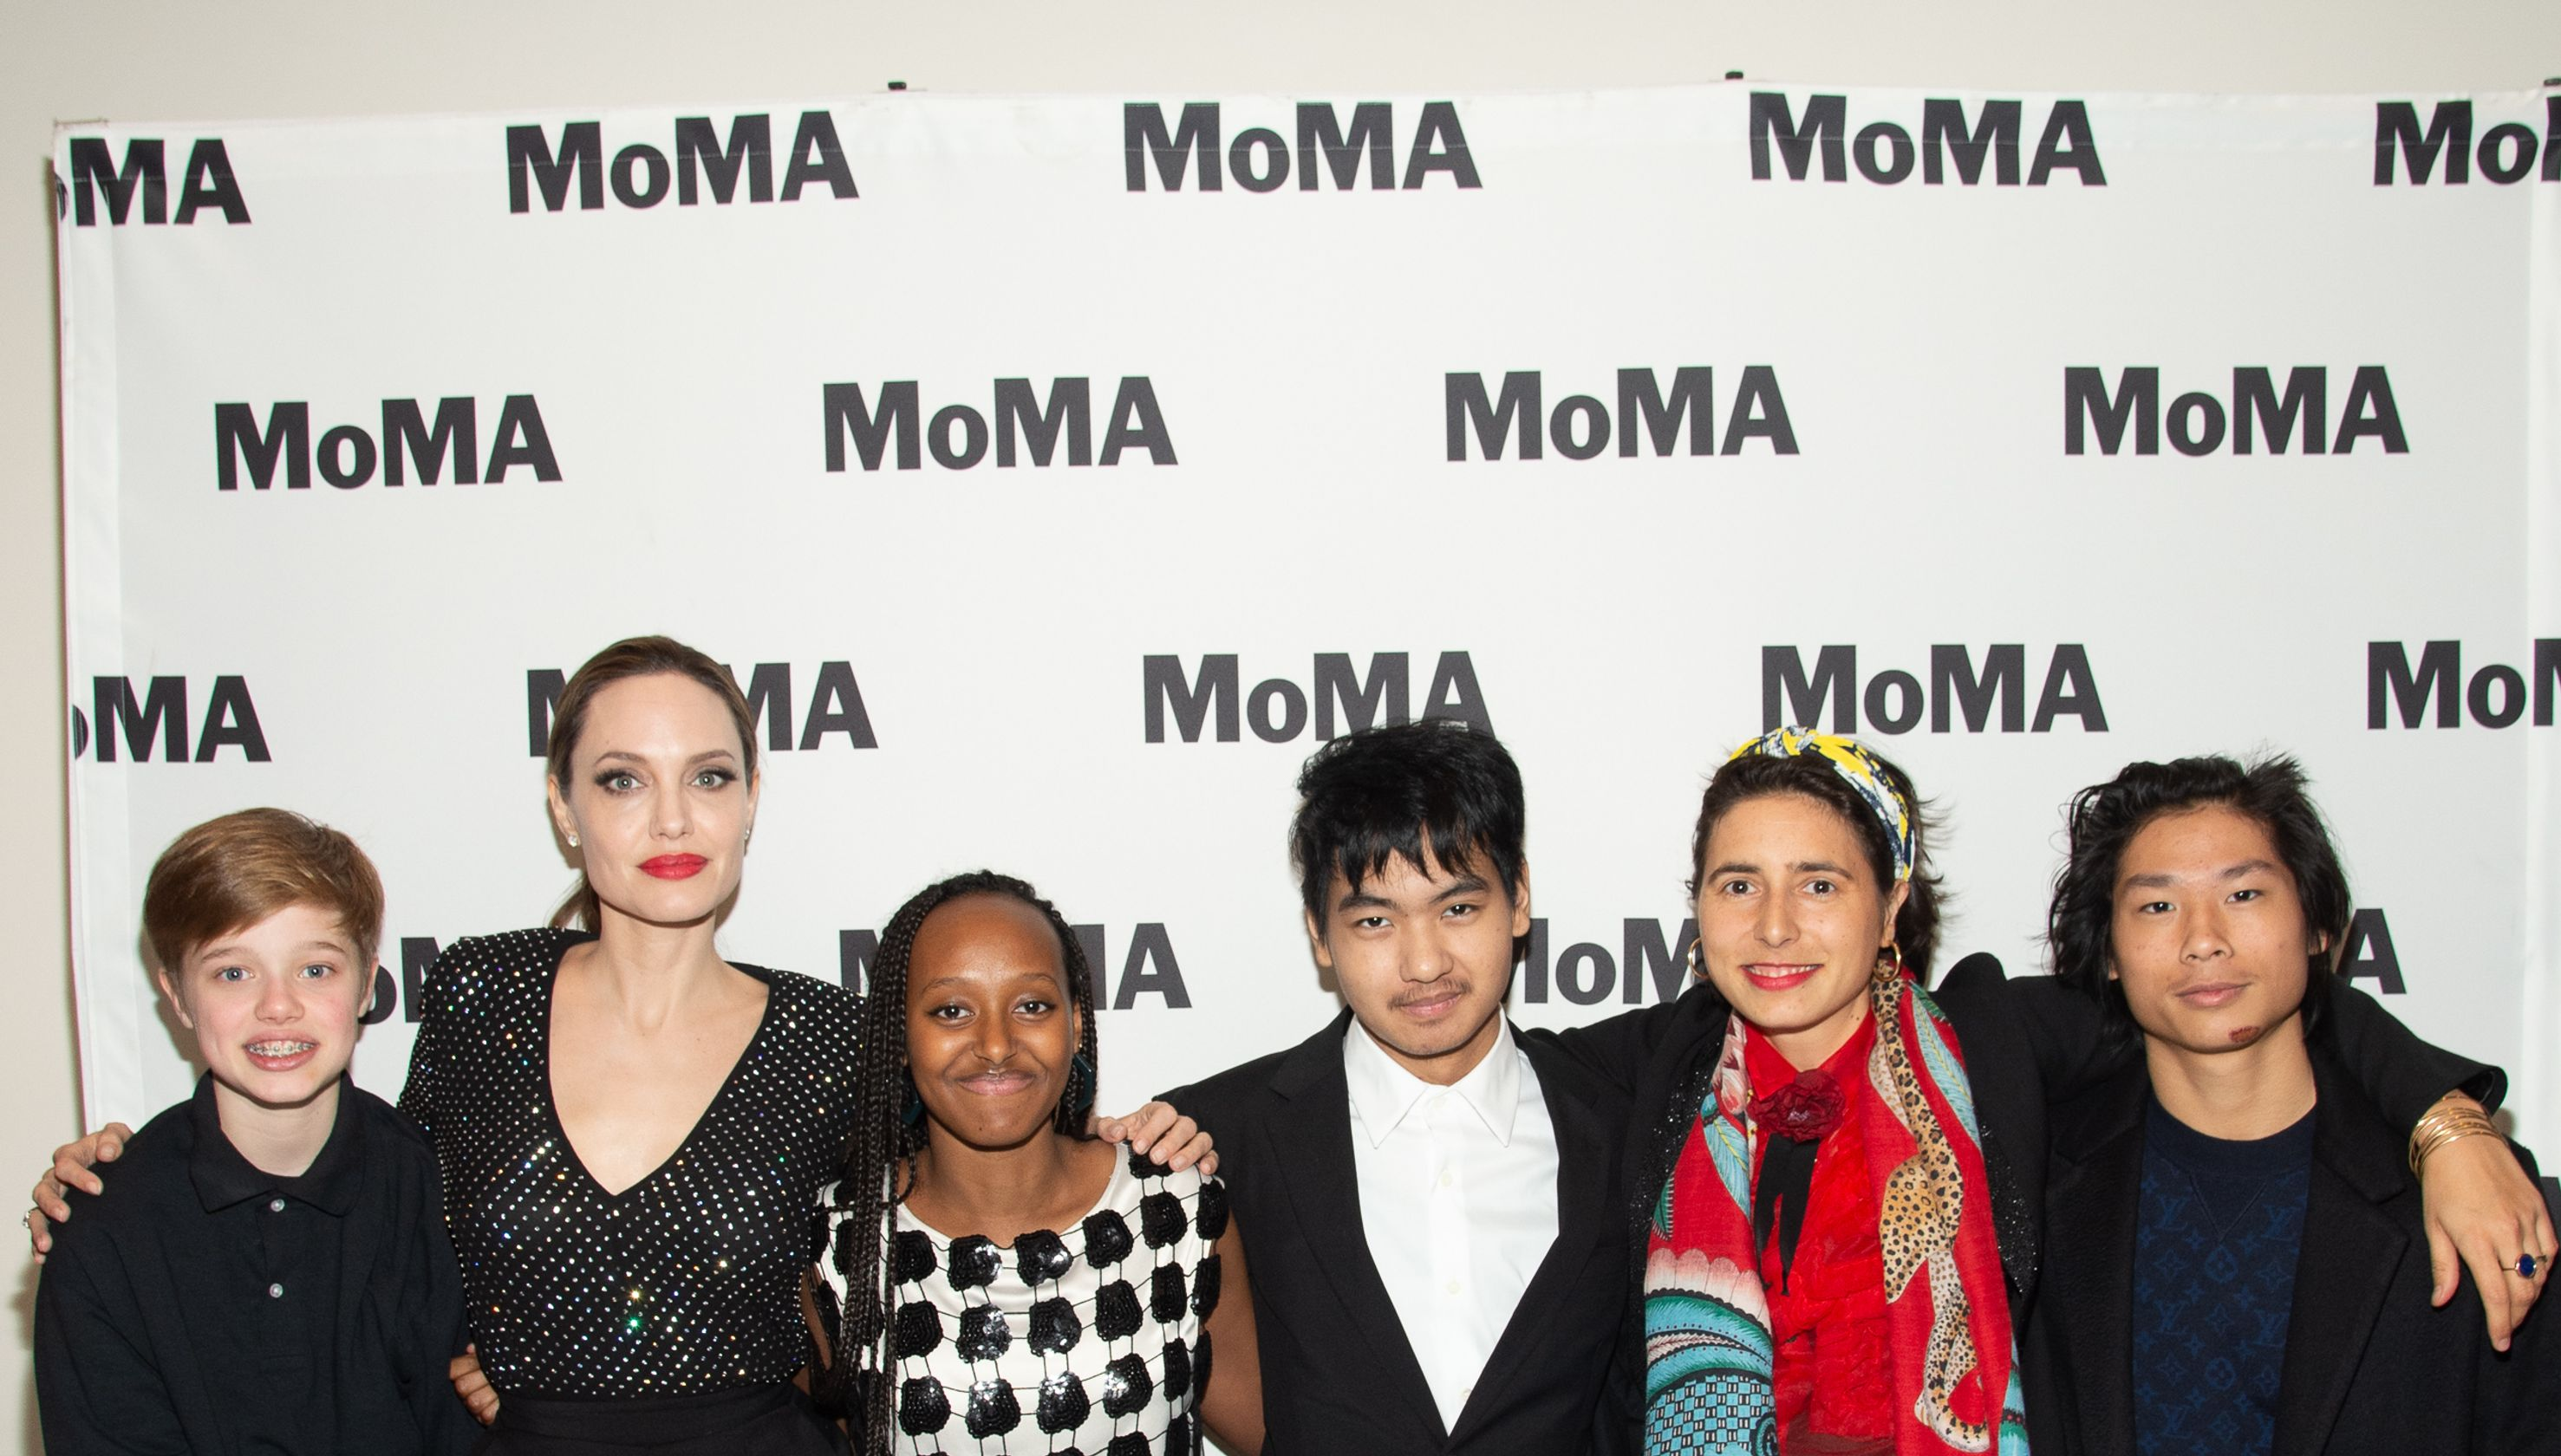 Angelina Jolie makes rare appearance with 4 of her children at a museum event